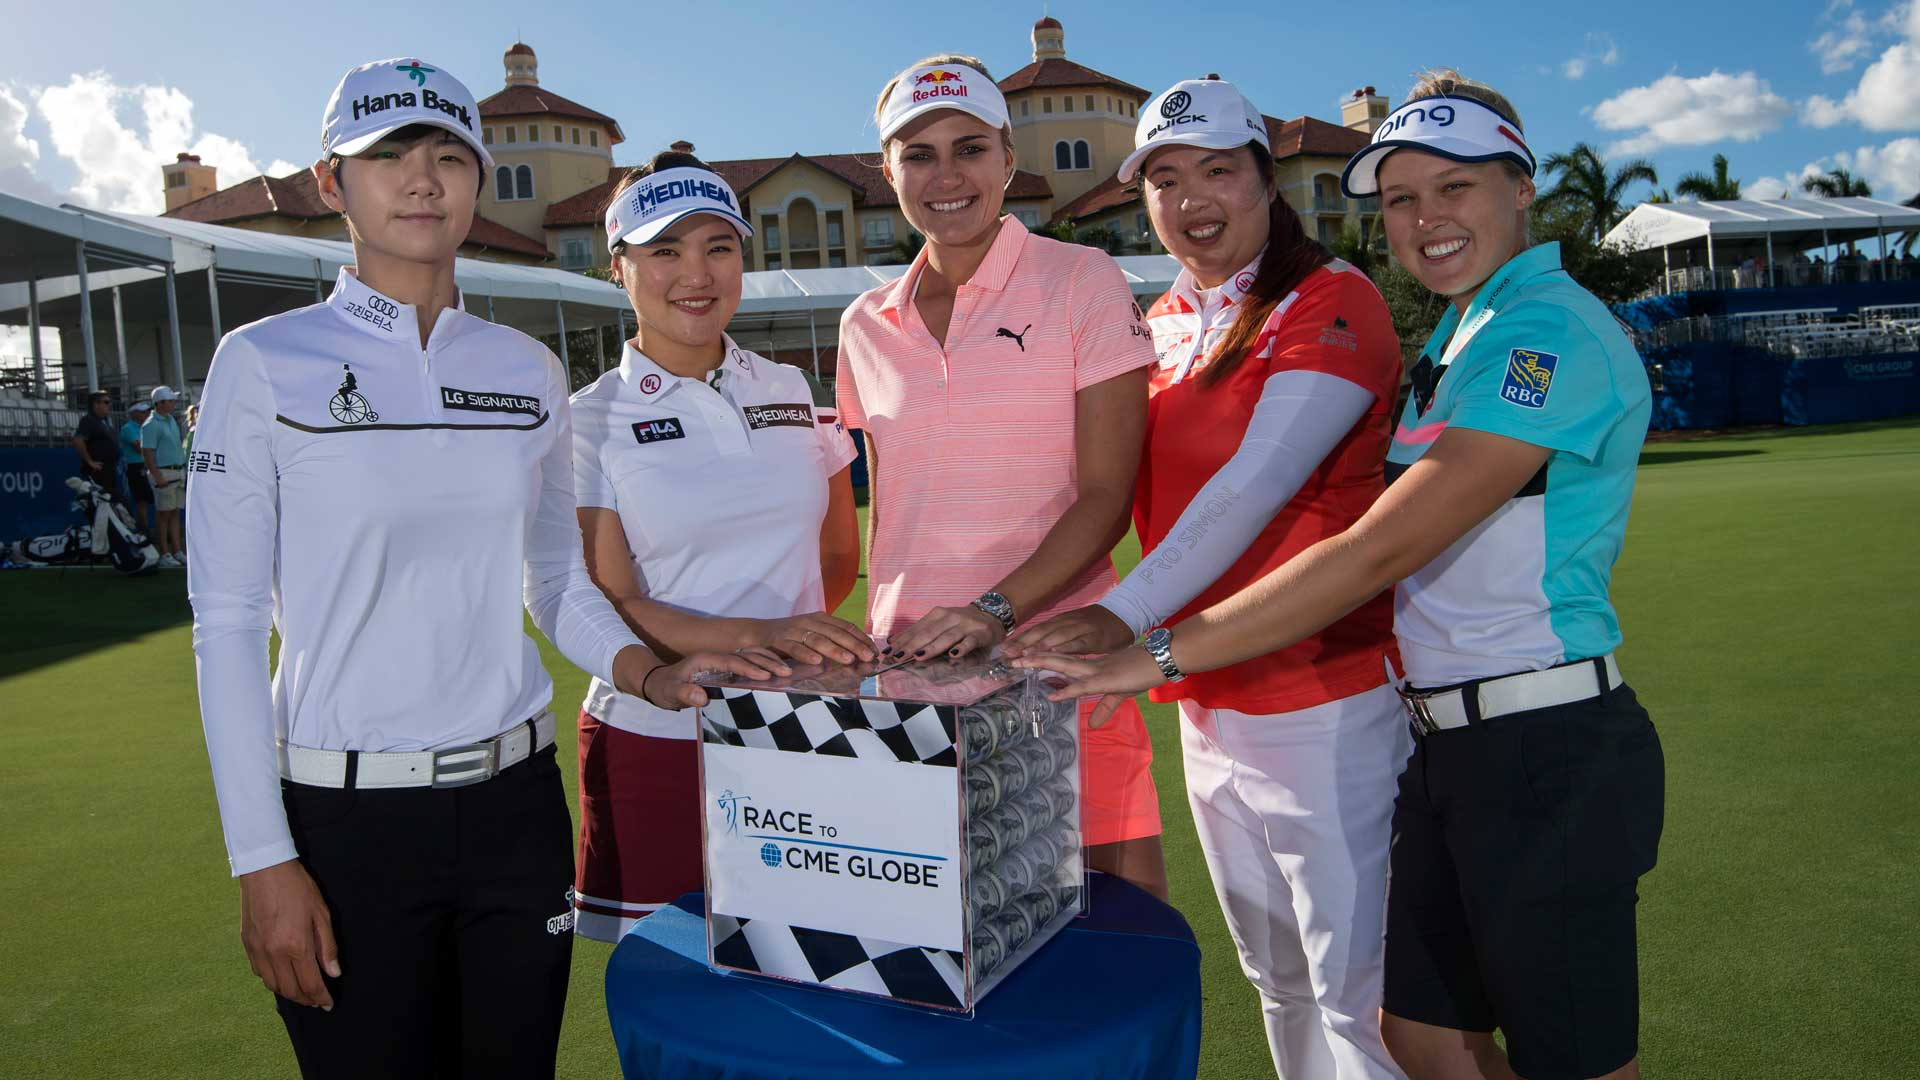 From Left to Right: Sung Hyun Park, So Yeon Ryu, Lexi Thompson, Shanshan Feng and Brooke Henderson pose with the Race to CME Globe $1 Million prize